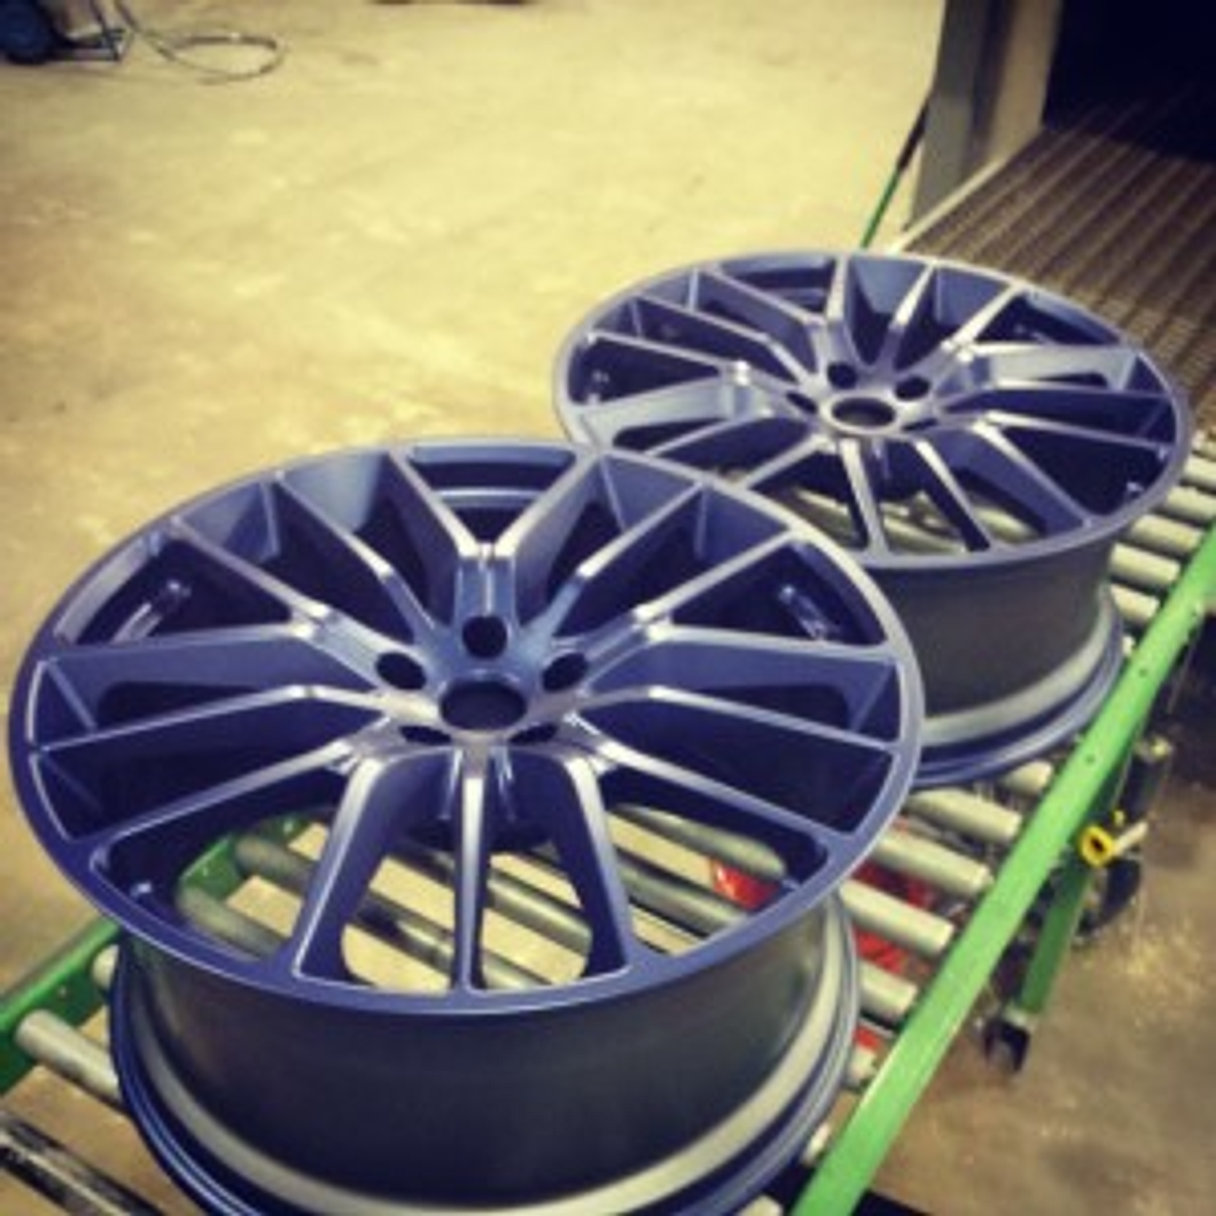 Wheelkraft NW: Wheel Repair Service Portland OR Vancouver WA